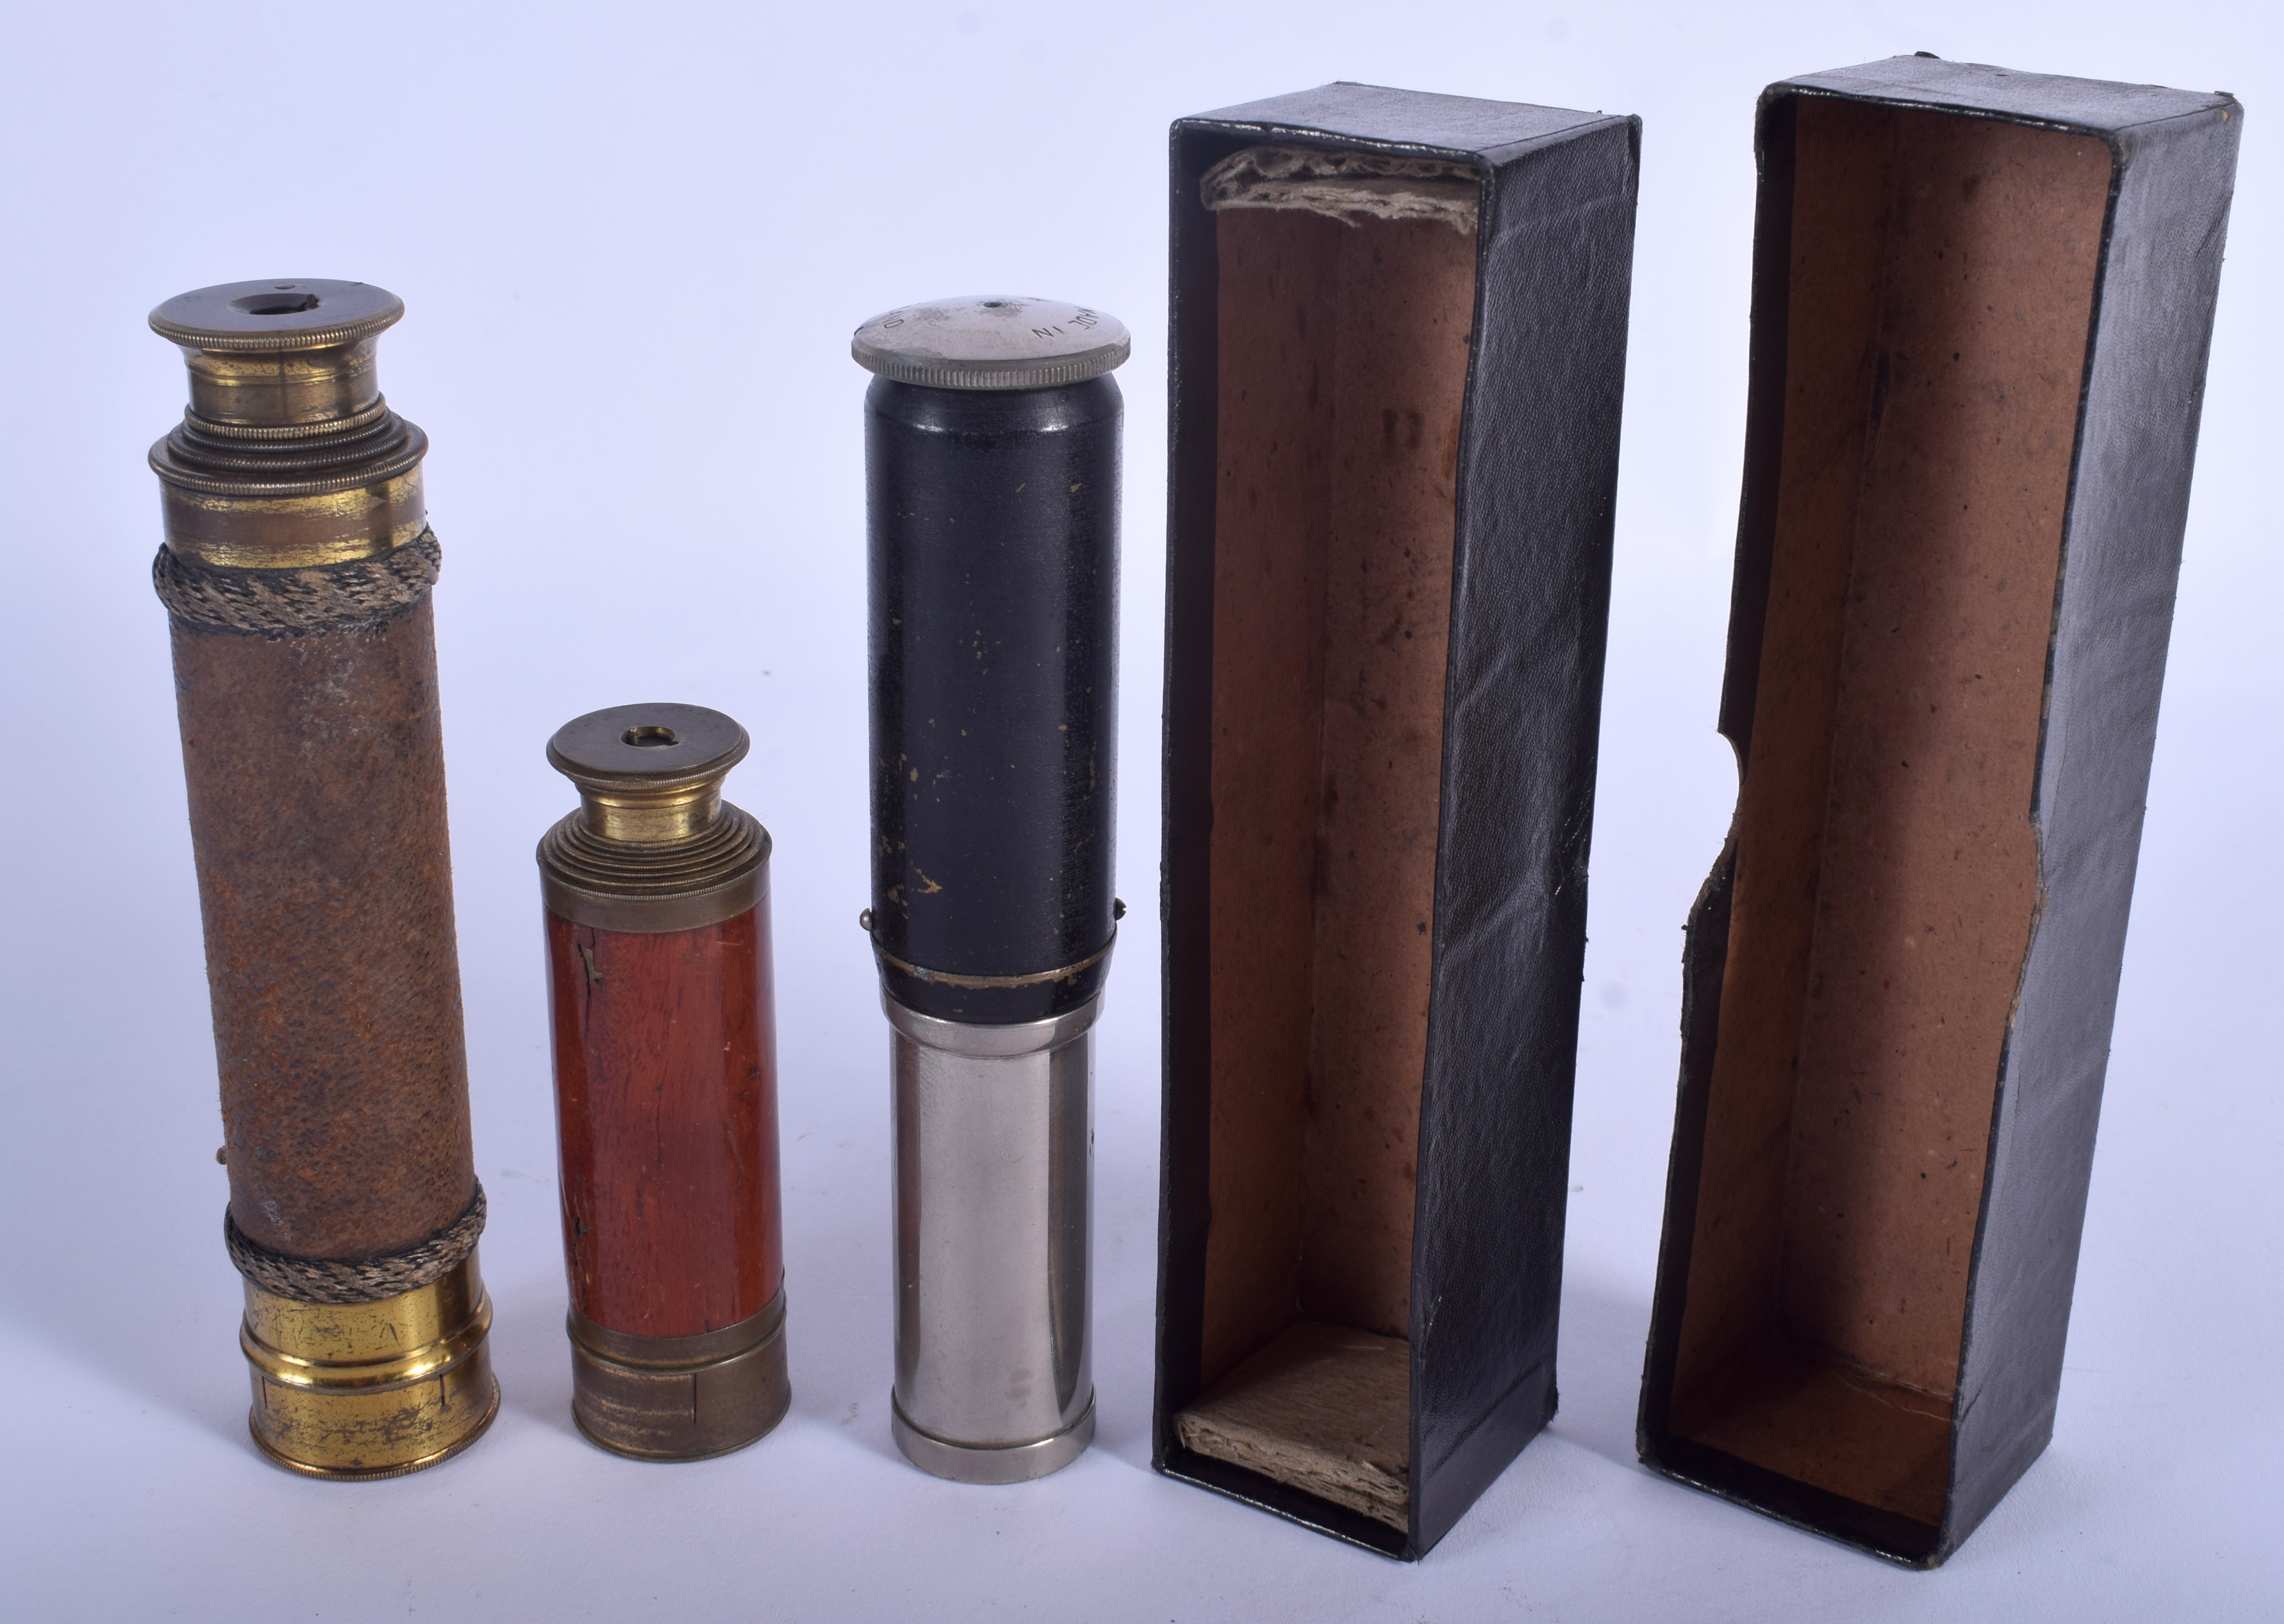 Lot 629 - AN ANTIQUE IRISH SPEAR OF DUBLIN MINIATURE TELESCOPE together with two others. (3)